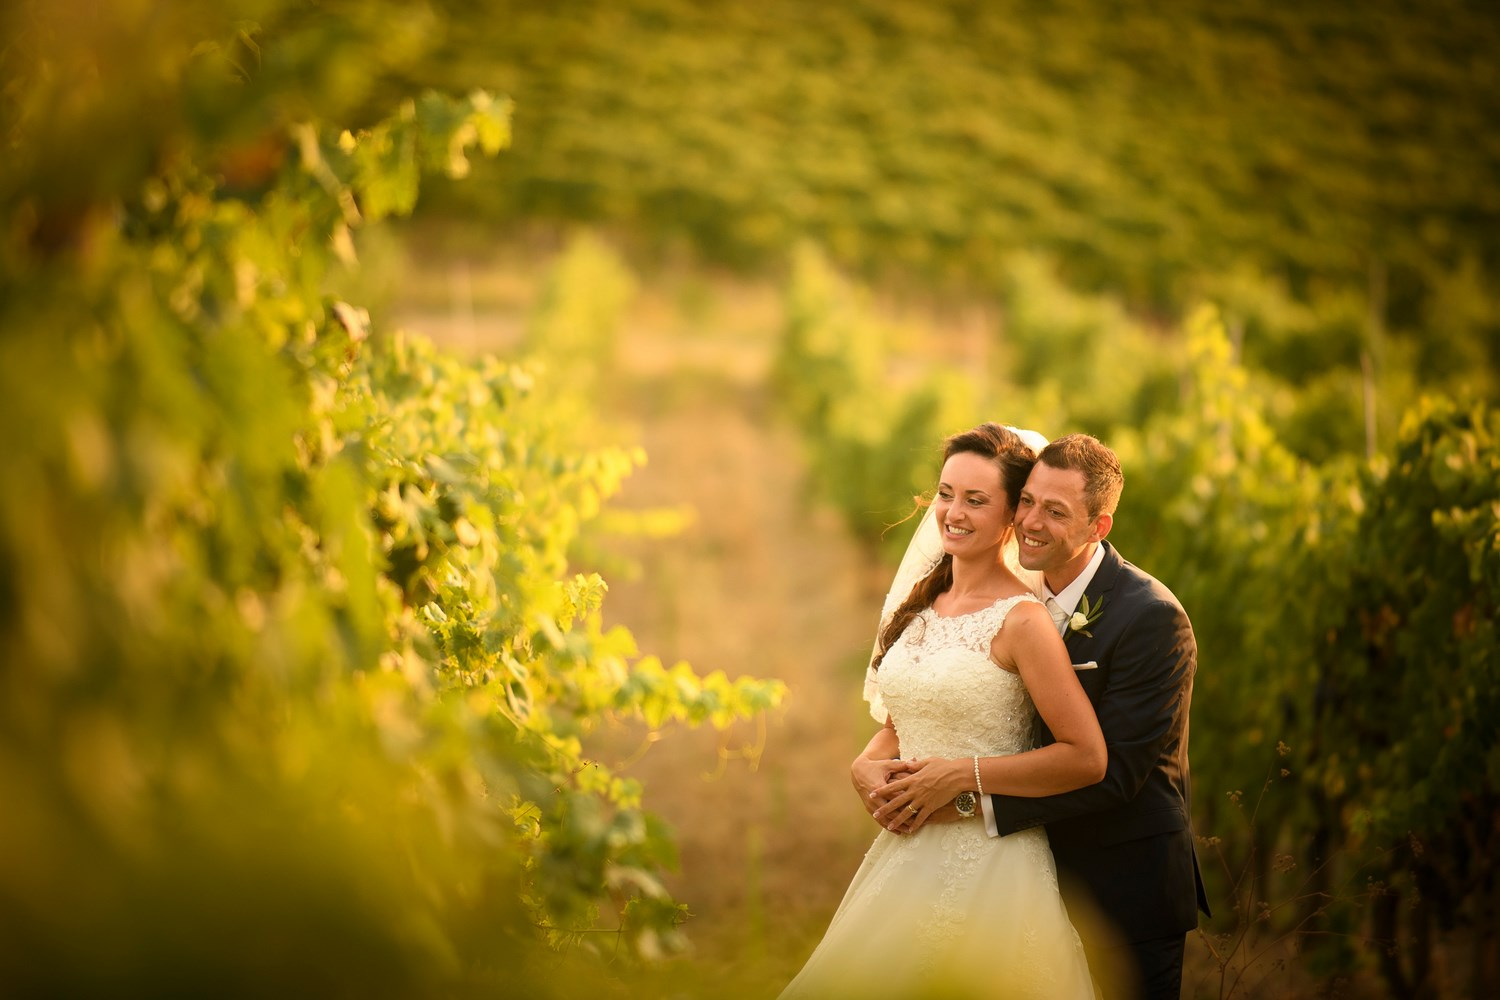 Chianti wedding in vineyards